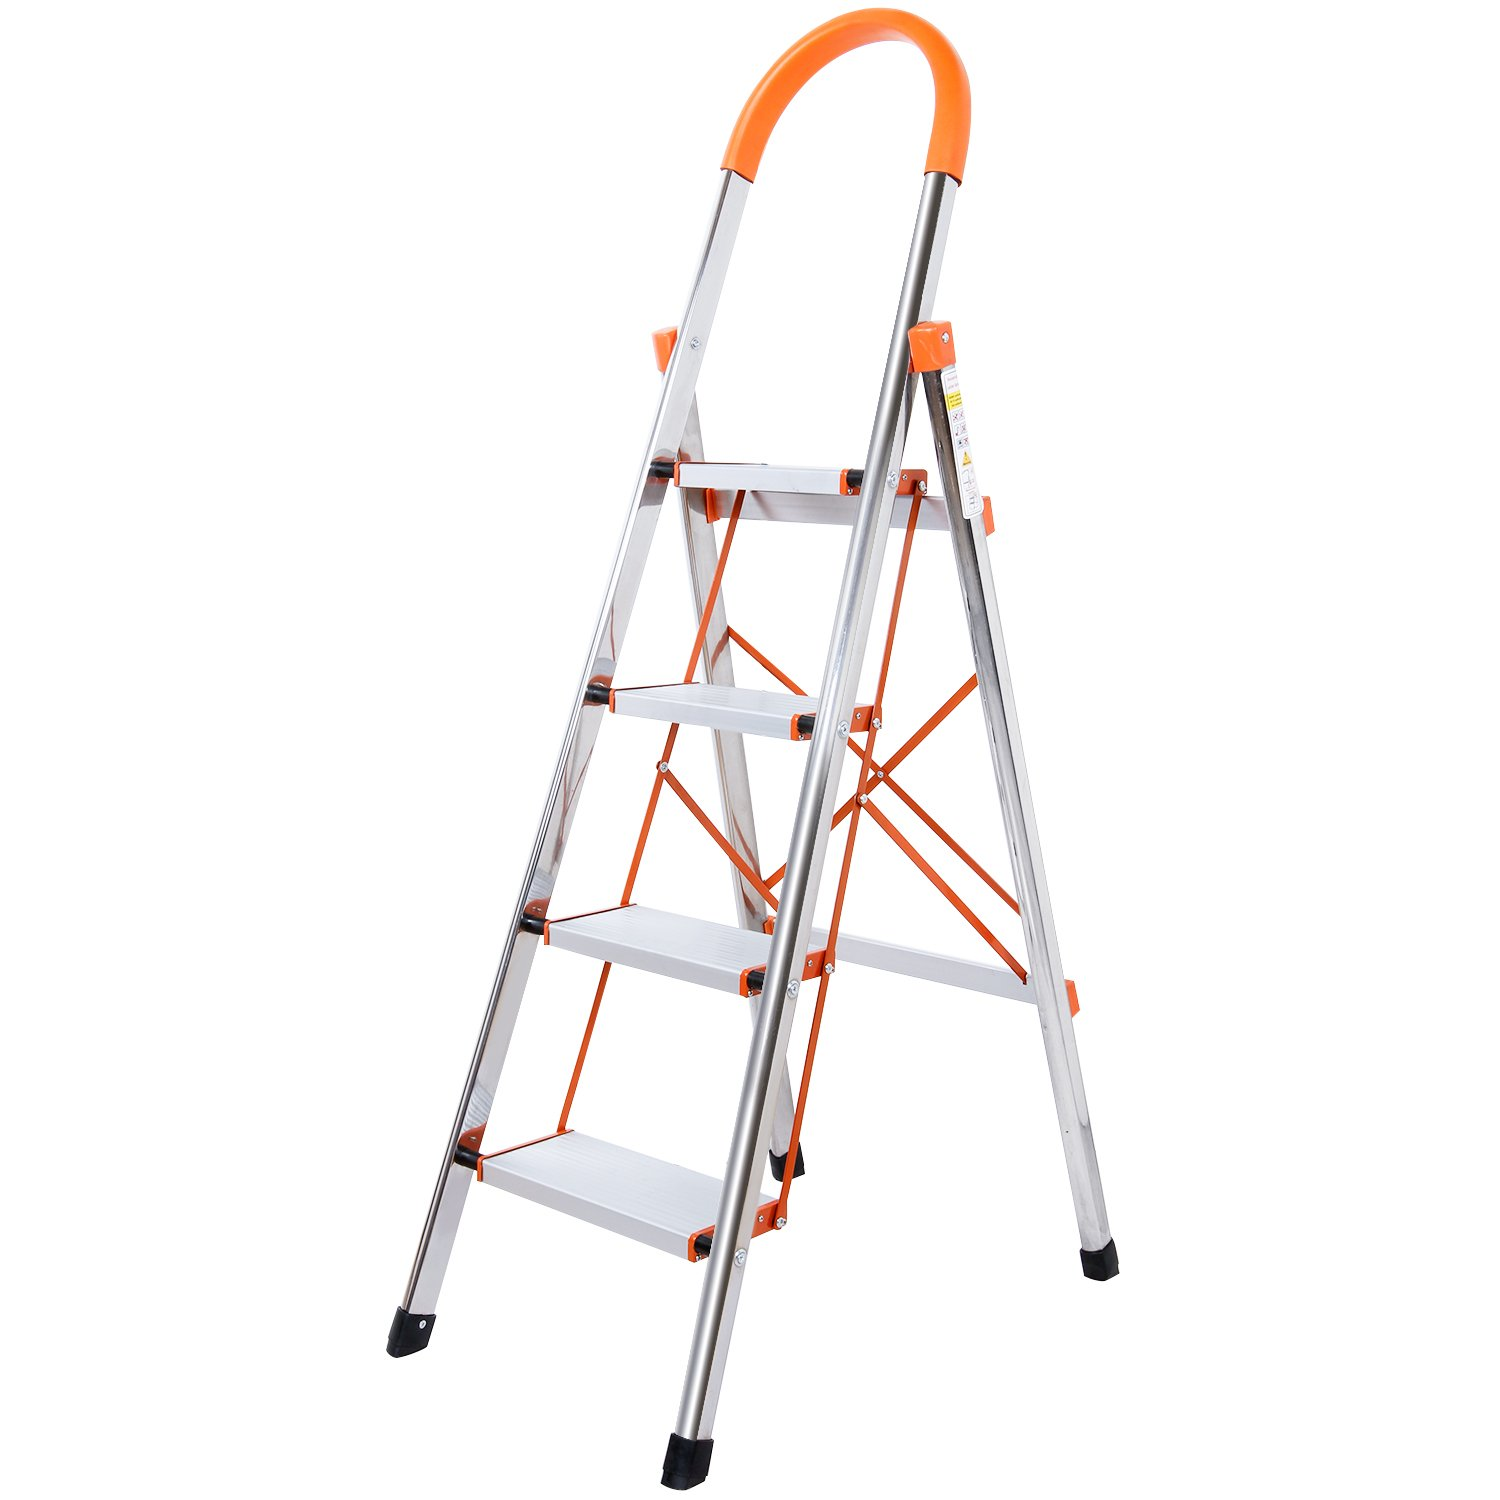 Lifewit 4-Step Stool Ladder Portable Folding Anti-Slip with Rubber Hand Grip 330lbs Capacity,Silver Household Stepladders